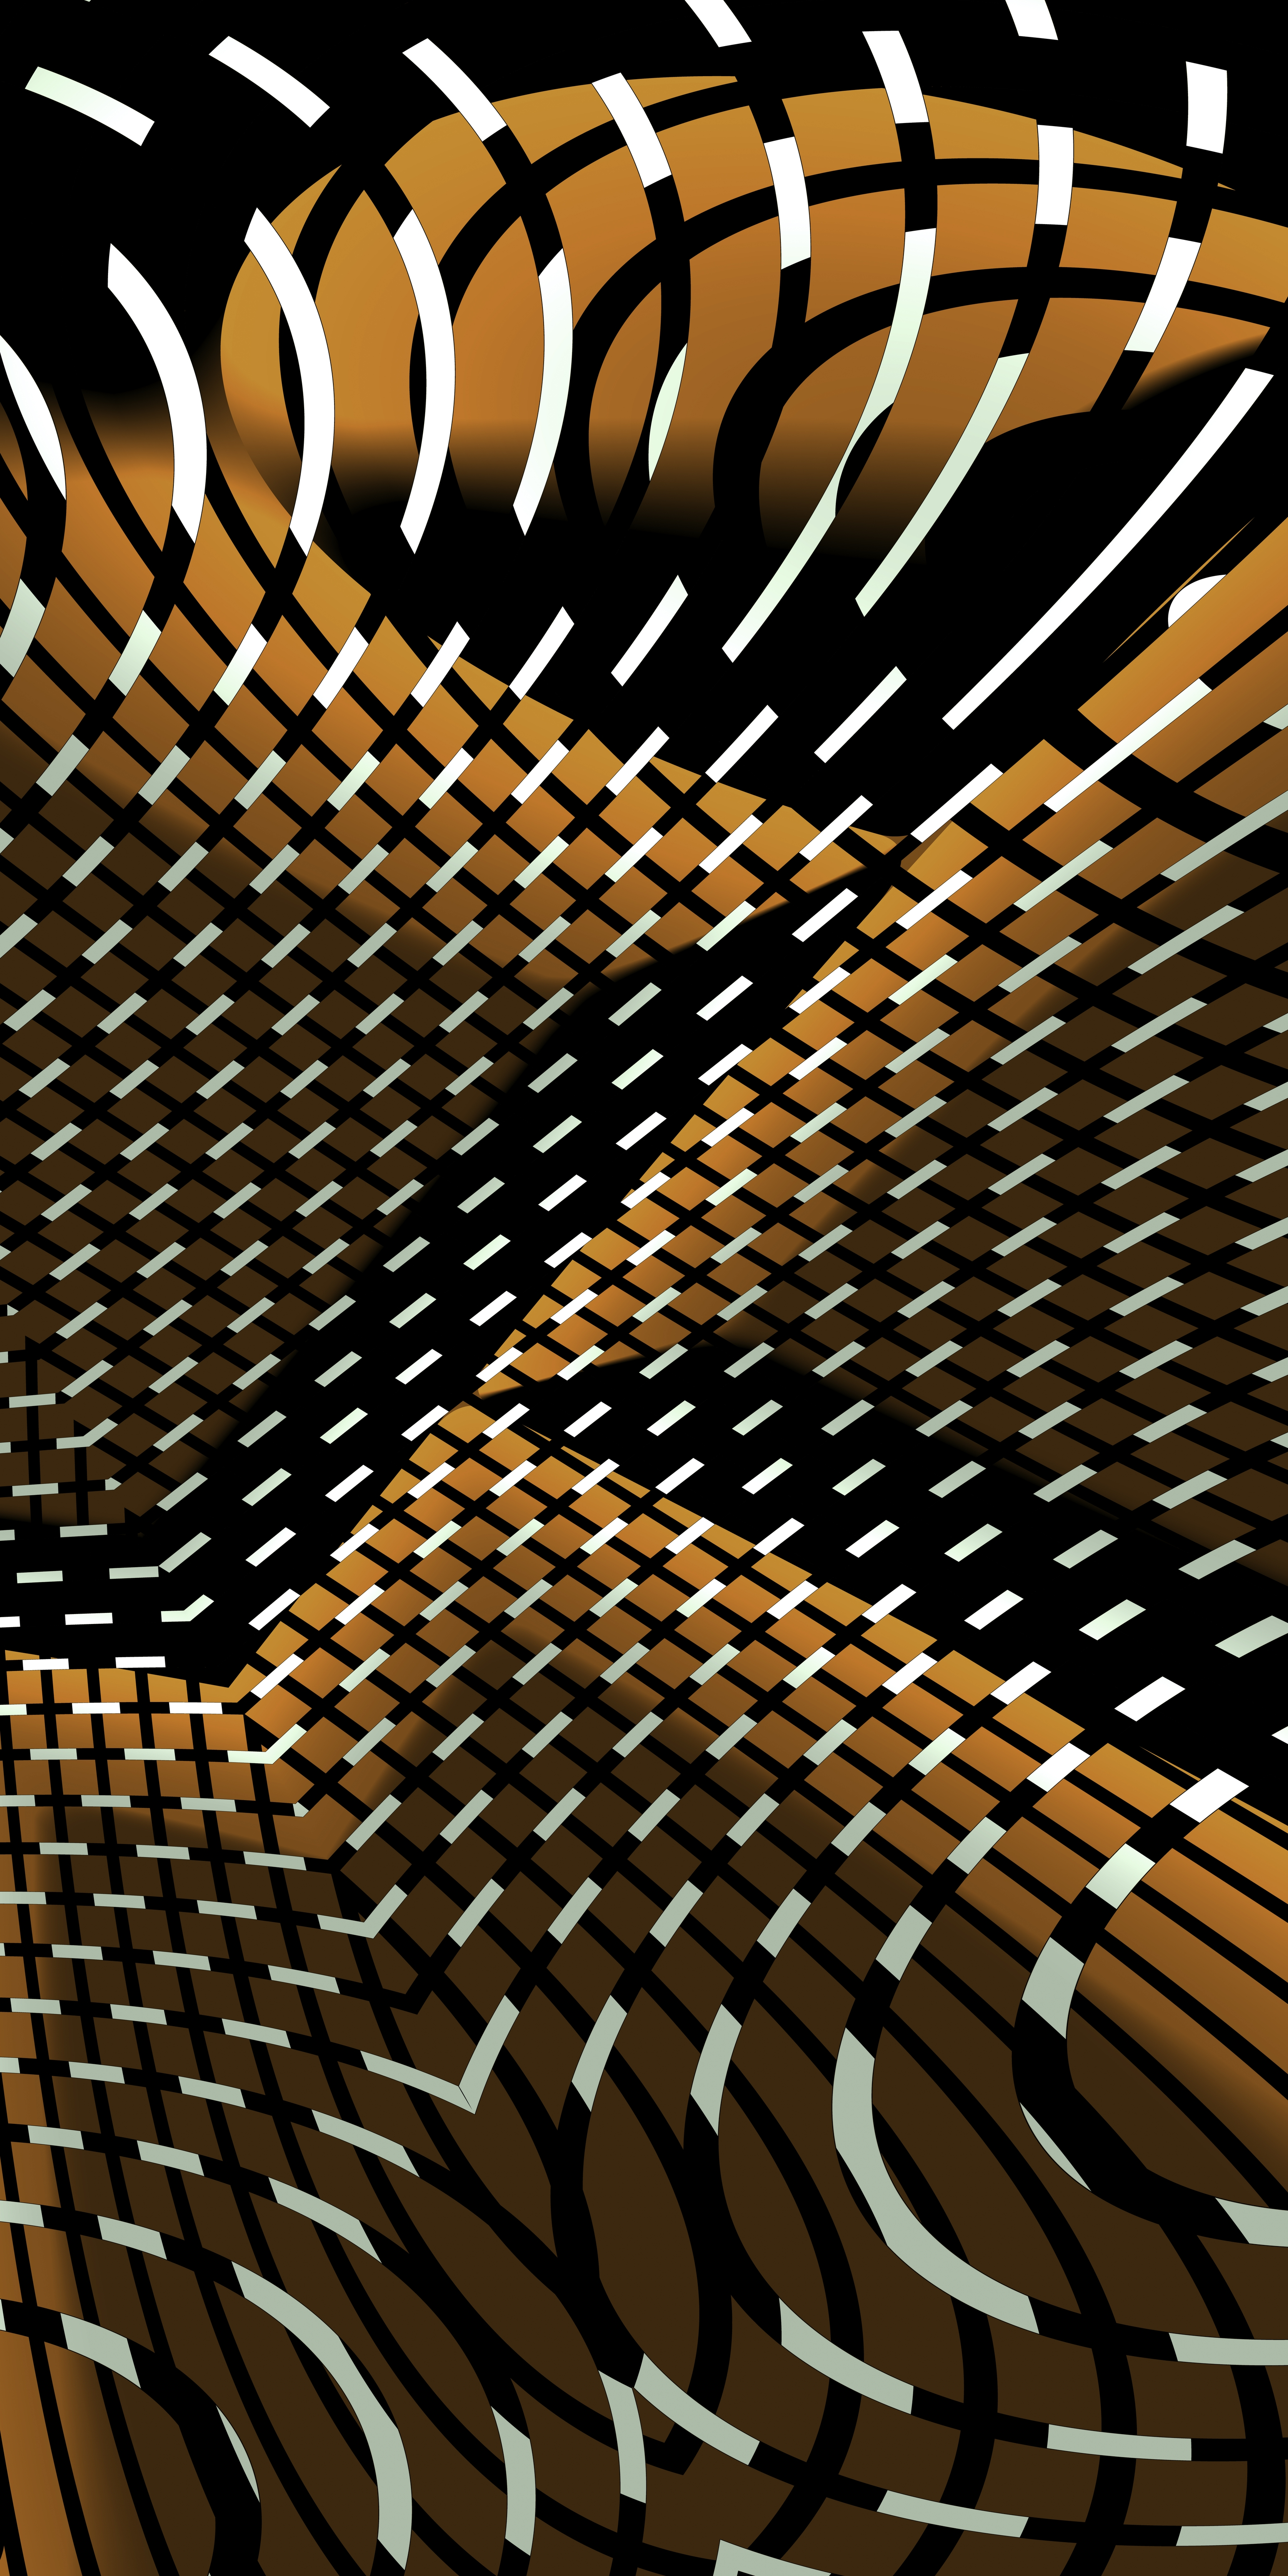 125084 download wallpaper Abstract, Stripes, Streaks, Lines, Digital screensavers and pictures for free